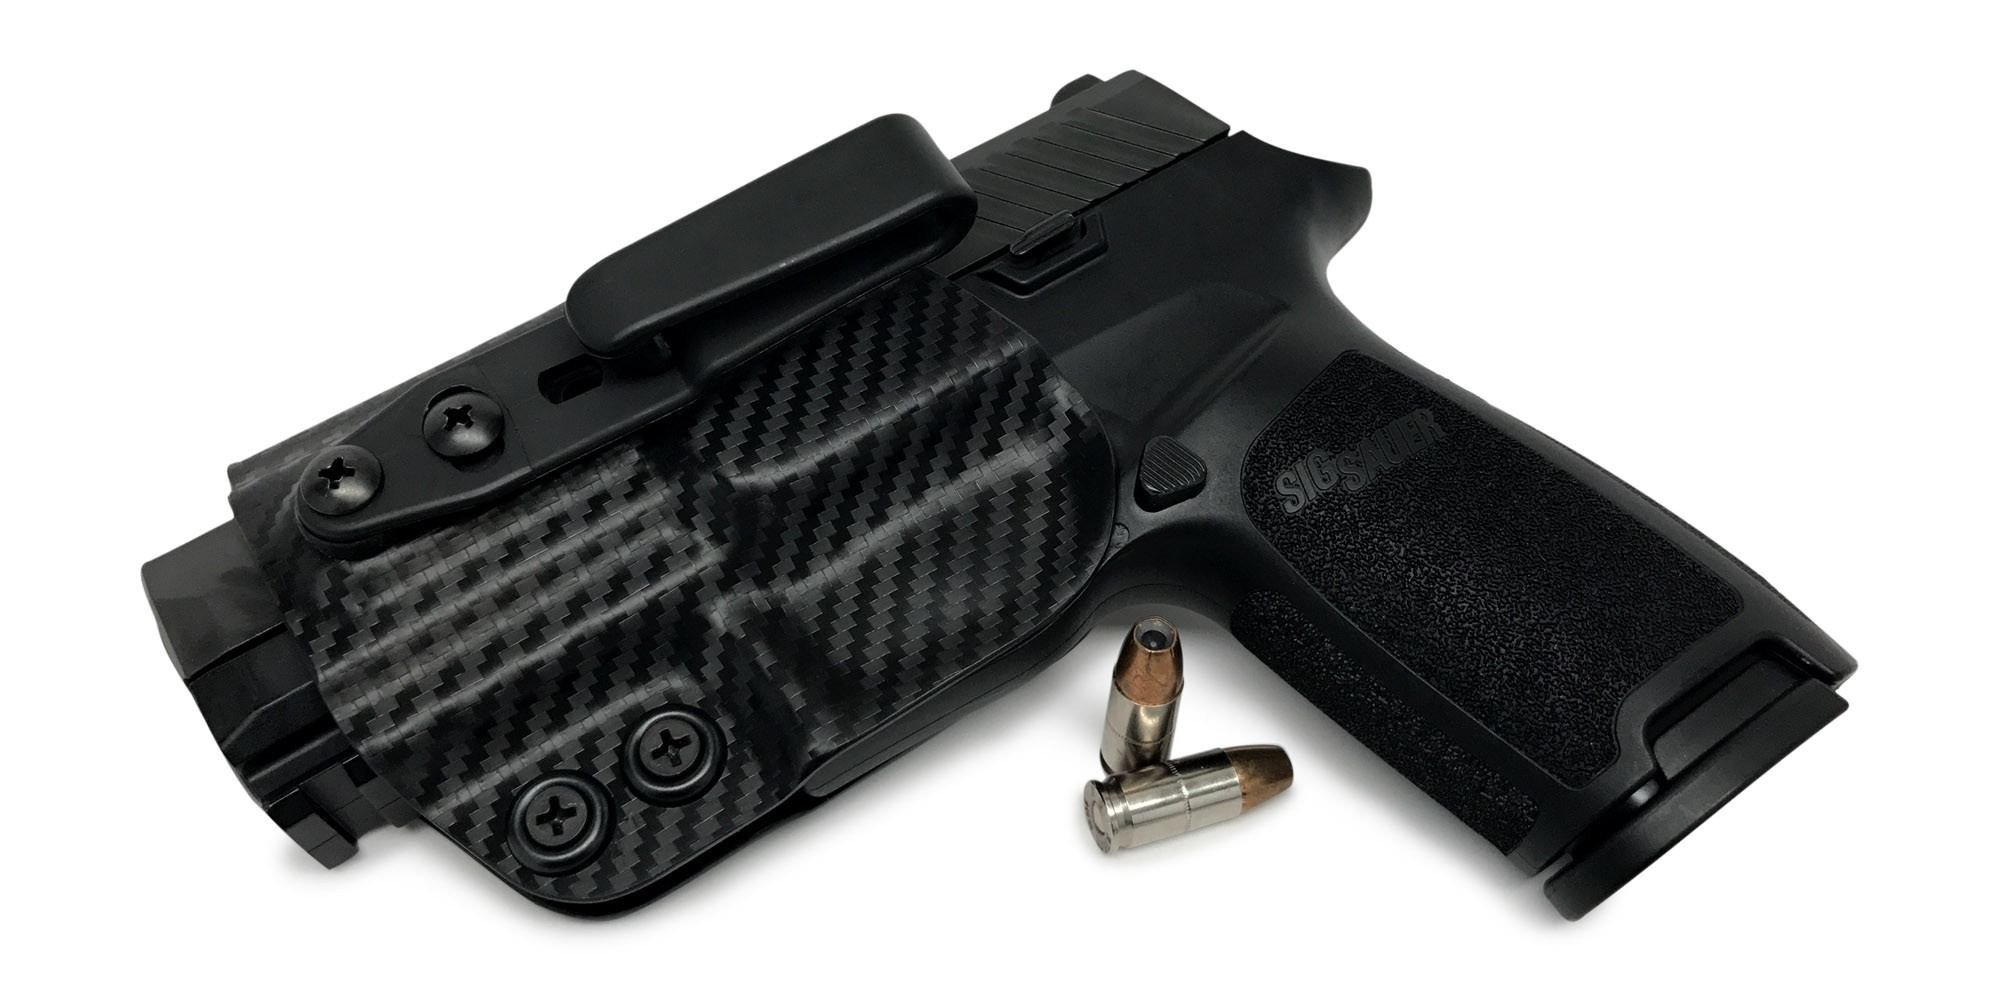 tuckable-iwb-kydex-holster-sig-sauer-p320-tuckable-iwb-kydex-holster-6